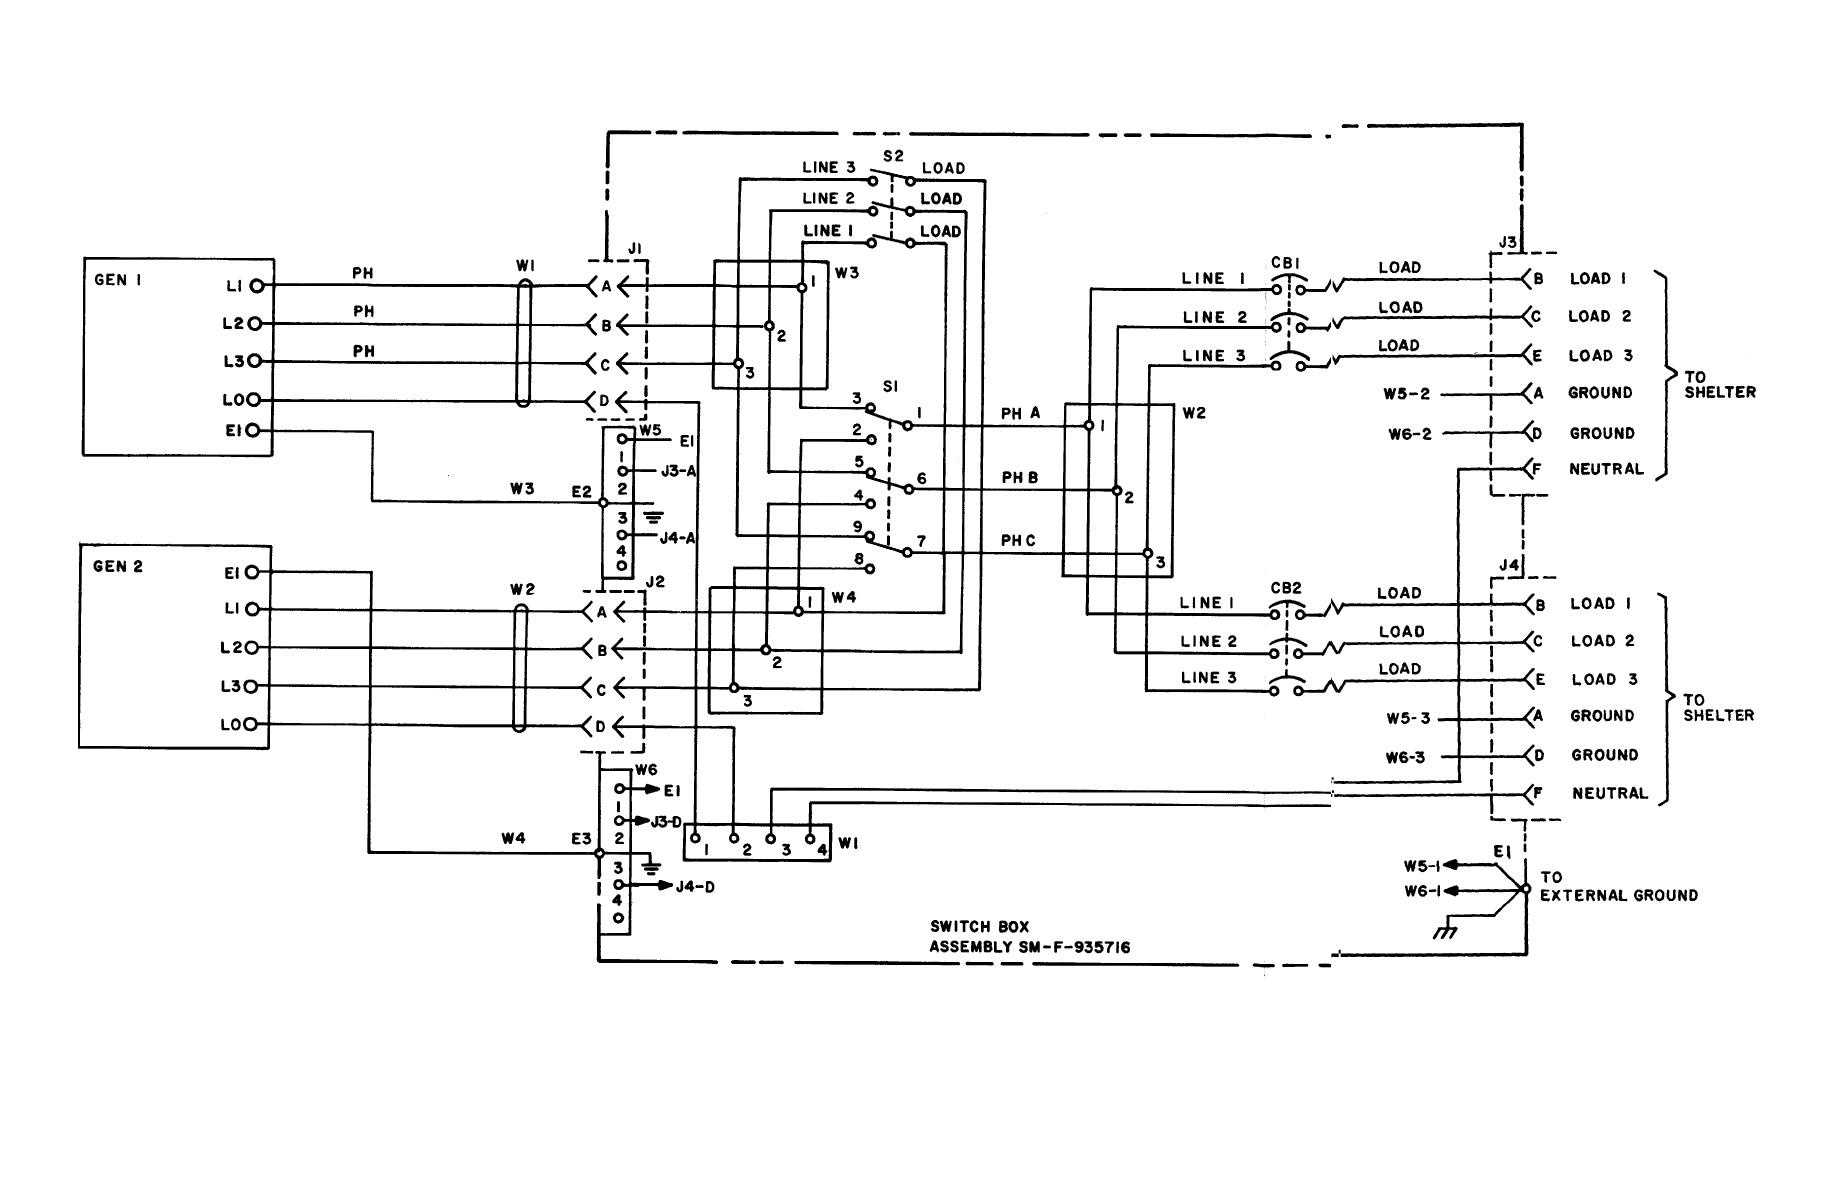 wiring schematic diagram wiring wiring diagrams online schematic wiring diagrams schematic wiring diagrams online